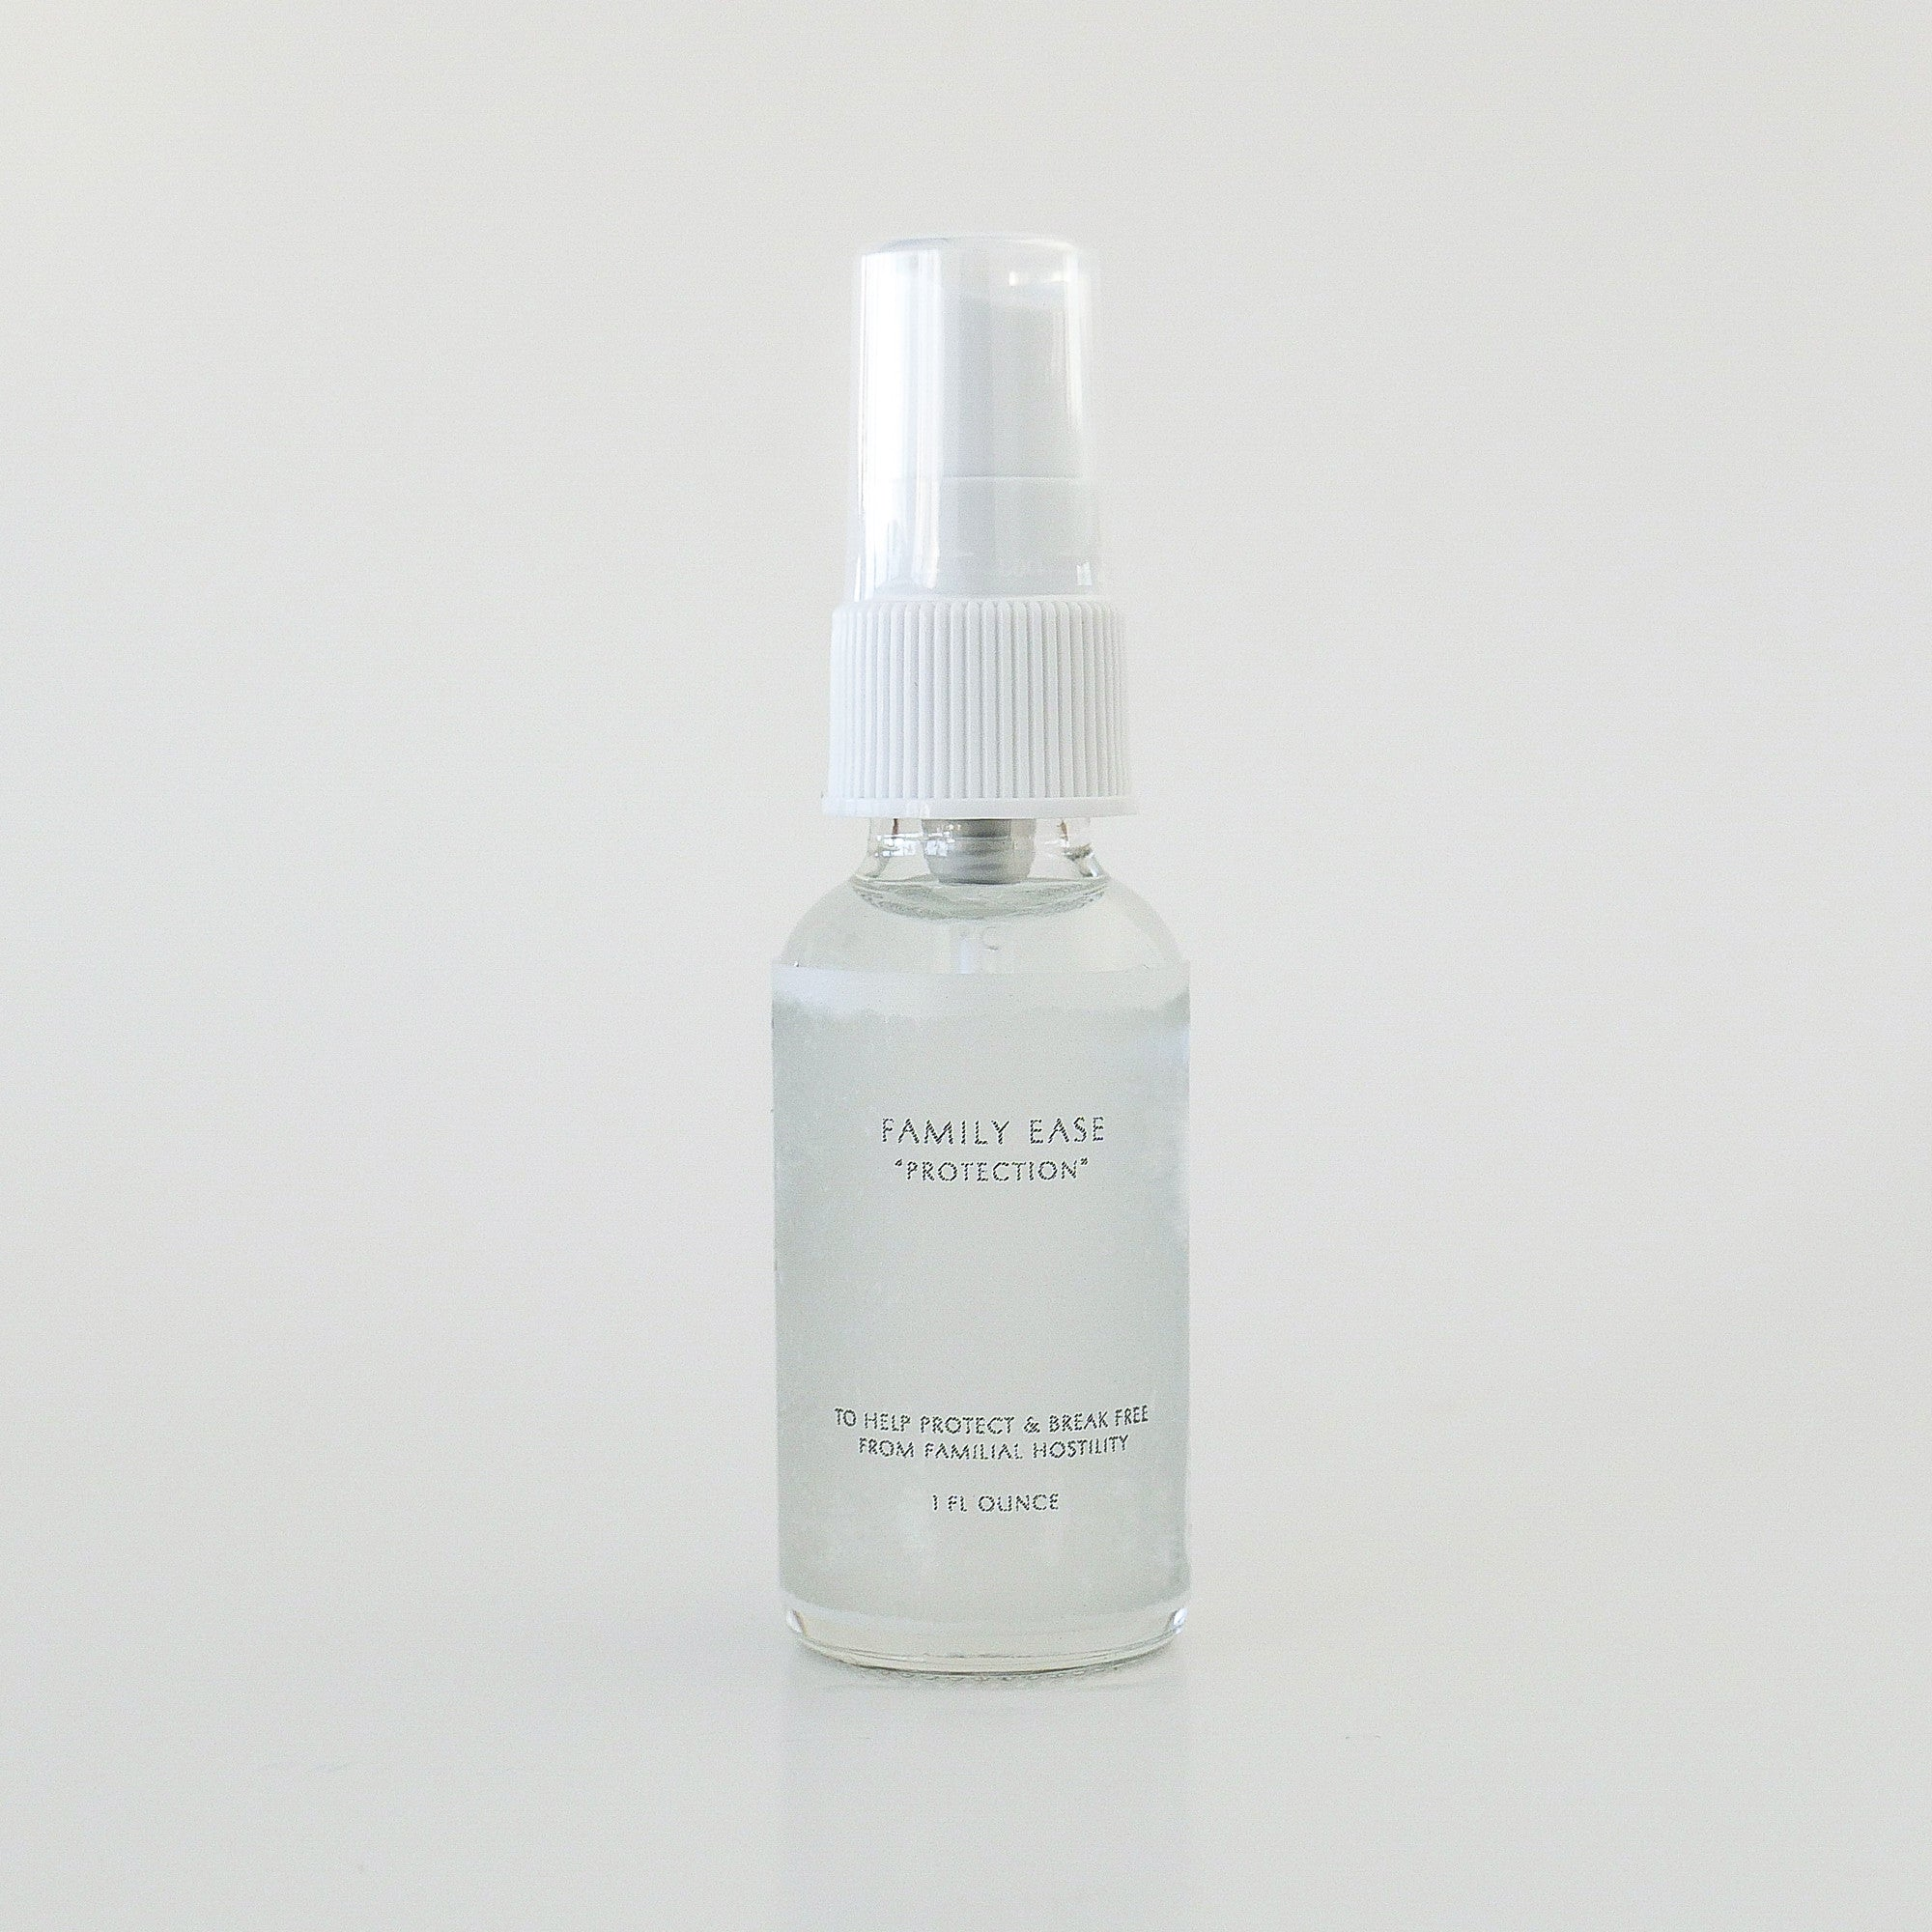 FAMILY EASE Flower & Gem Essence Formula